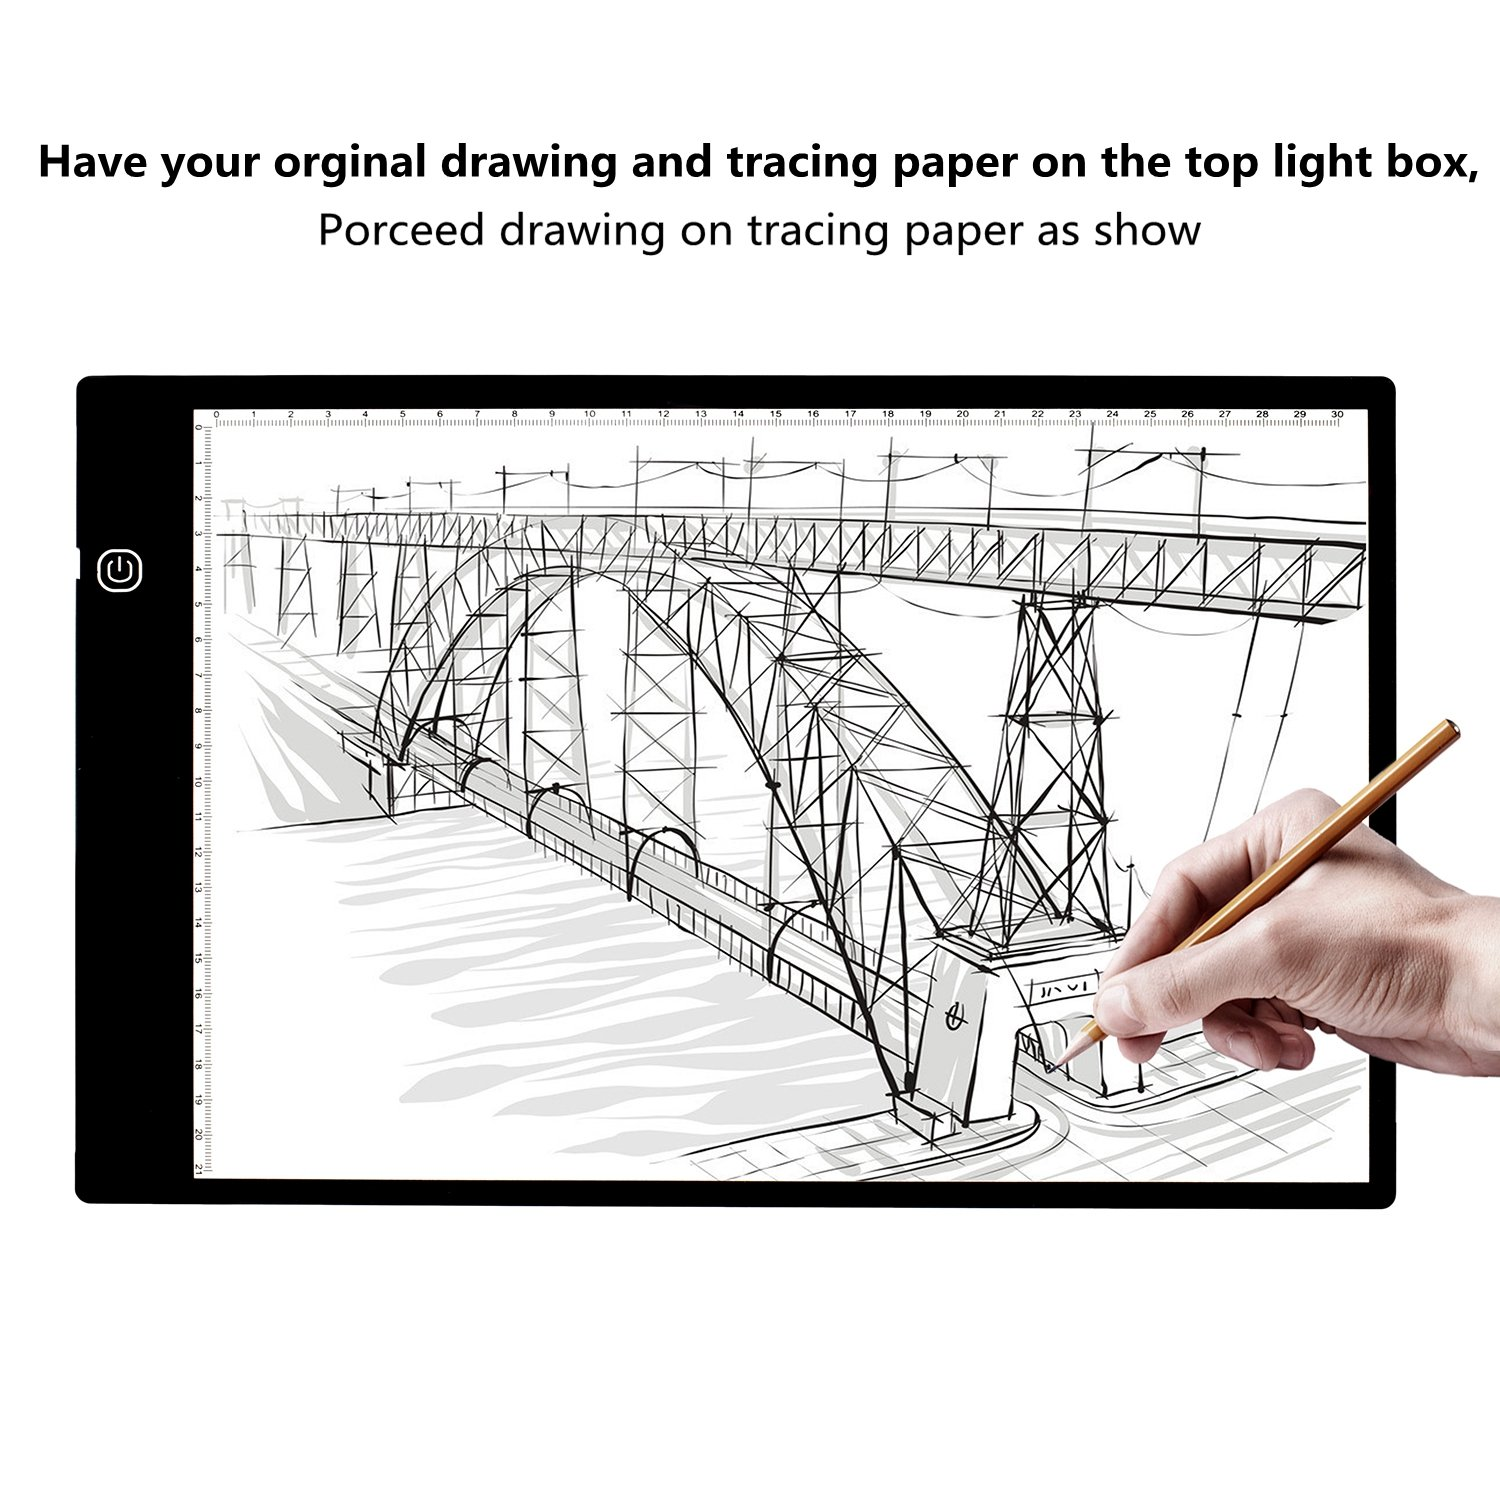 Elitehood Ultra Thin Light Box Light Pad for Tracing Drawing Eyesight-Protected Designed for Artists Drawing Sketching Animation